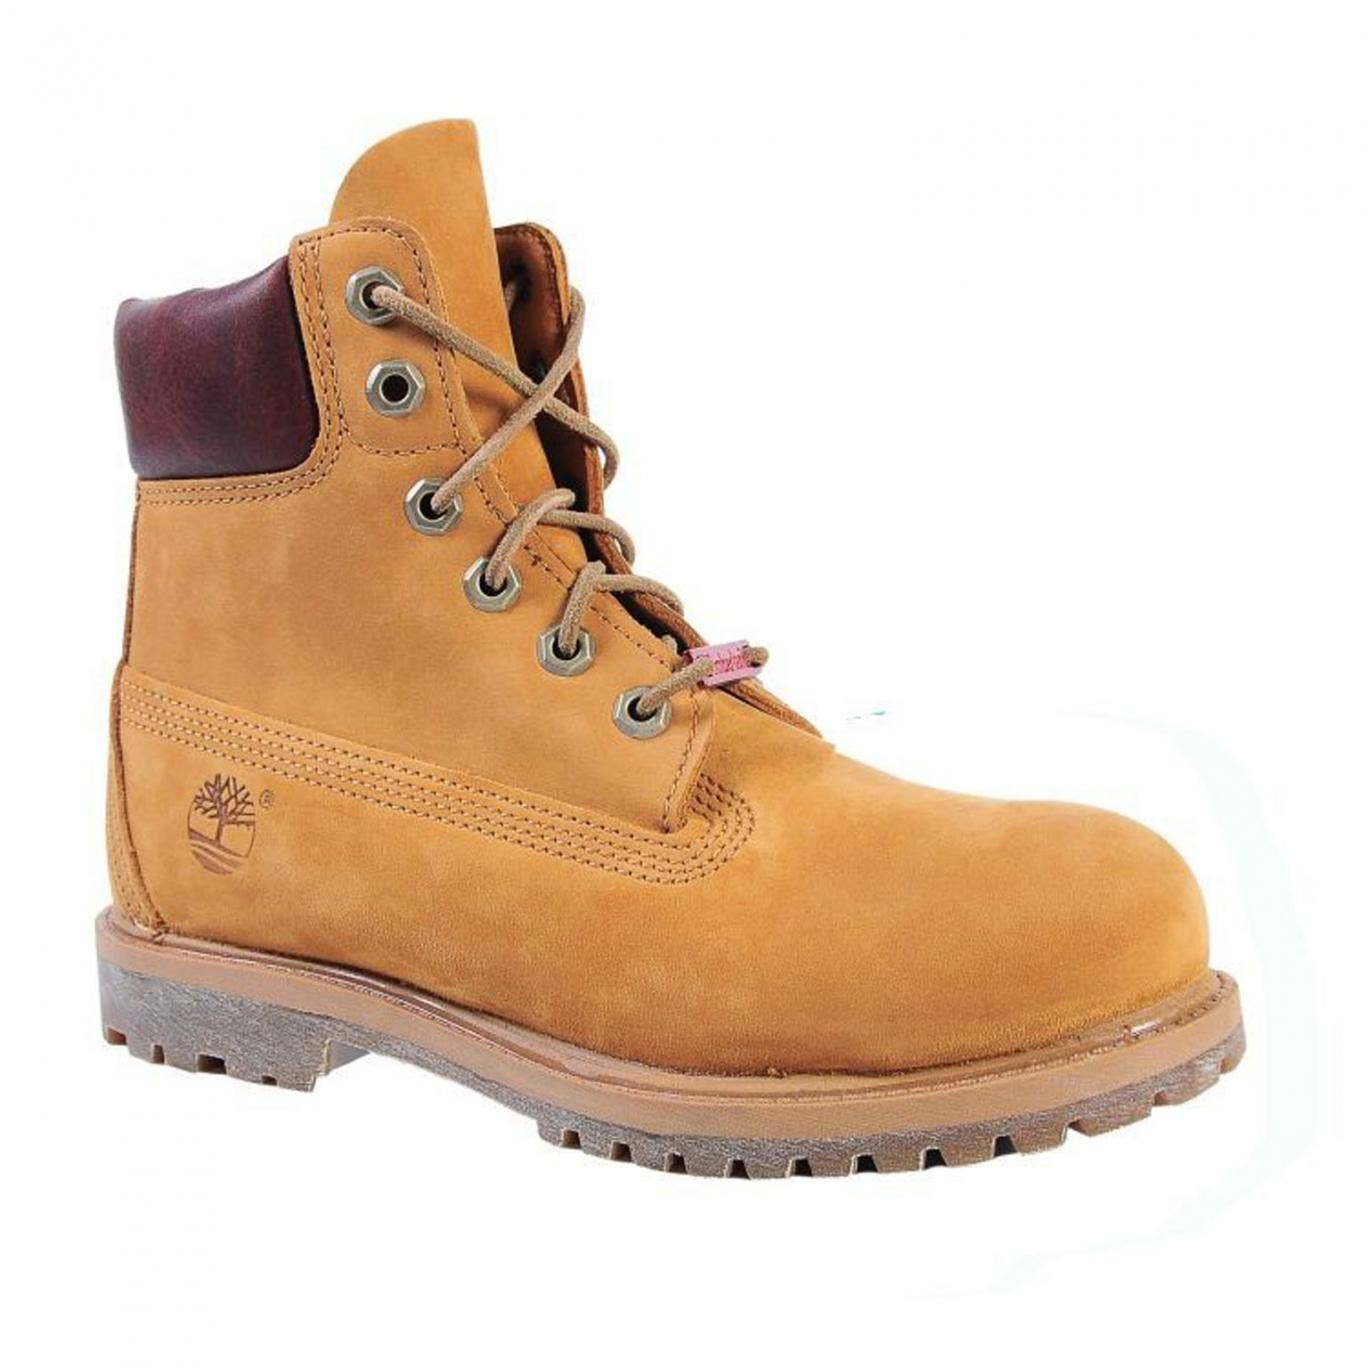 A bright yellow workman's boot does not sound like the most obvious candidate for wardrobe icon status but with 40 years of steady sales under its belt and a host of celebrity wearers, Timberland's most famous creation has earned its place in the shoe cup